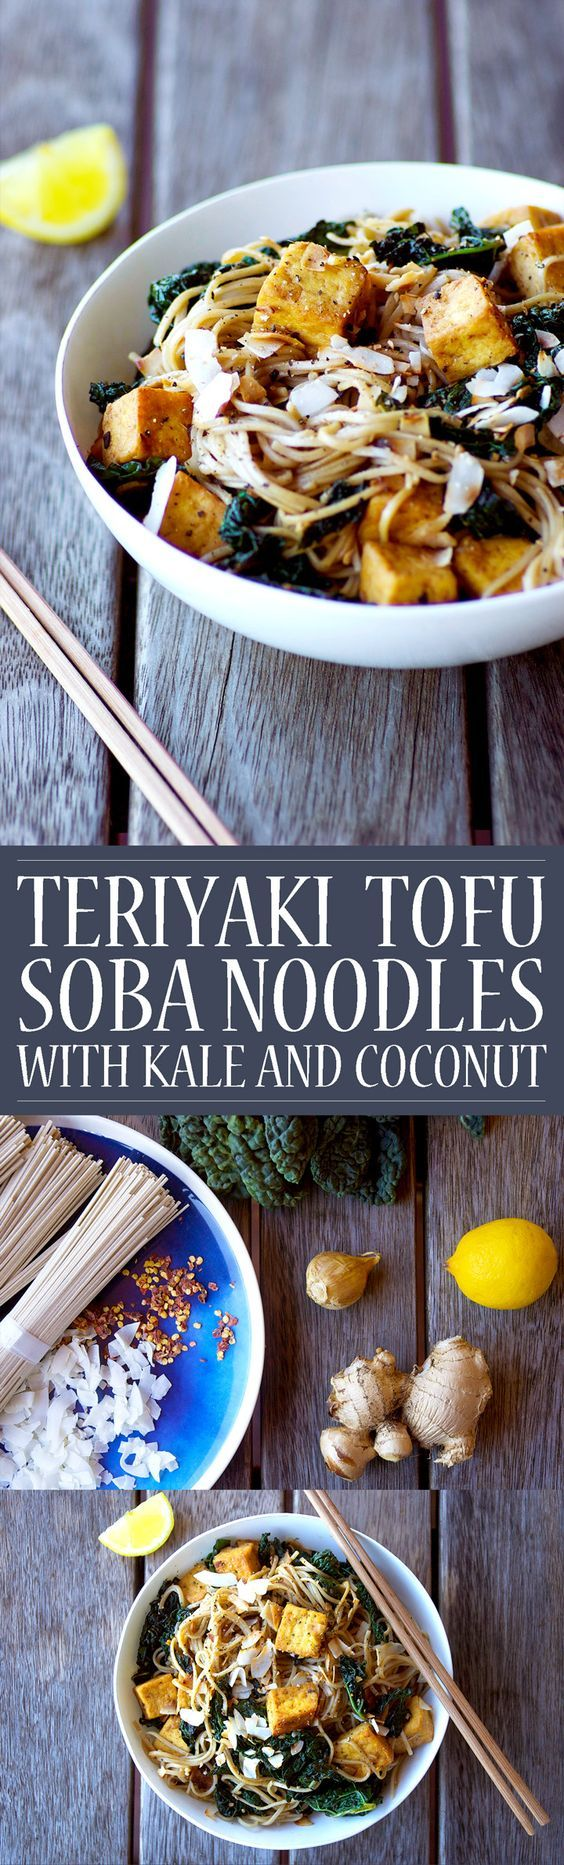 Teriyaki Tofu Soba Noodles with Kale and Coconut! Vegan gluten free grain free. A simple and quick recipe fromTeriyaki Tofu Soba Noodles with Kale and Coconut! Vegan gluten free grain free. A simple and quick recipe fromHomespuncapers